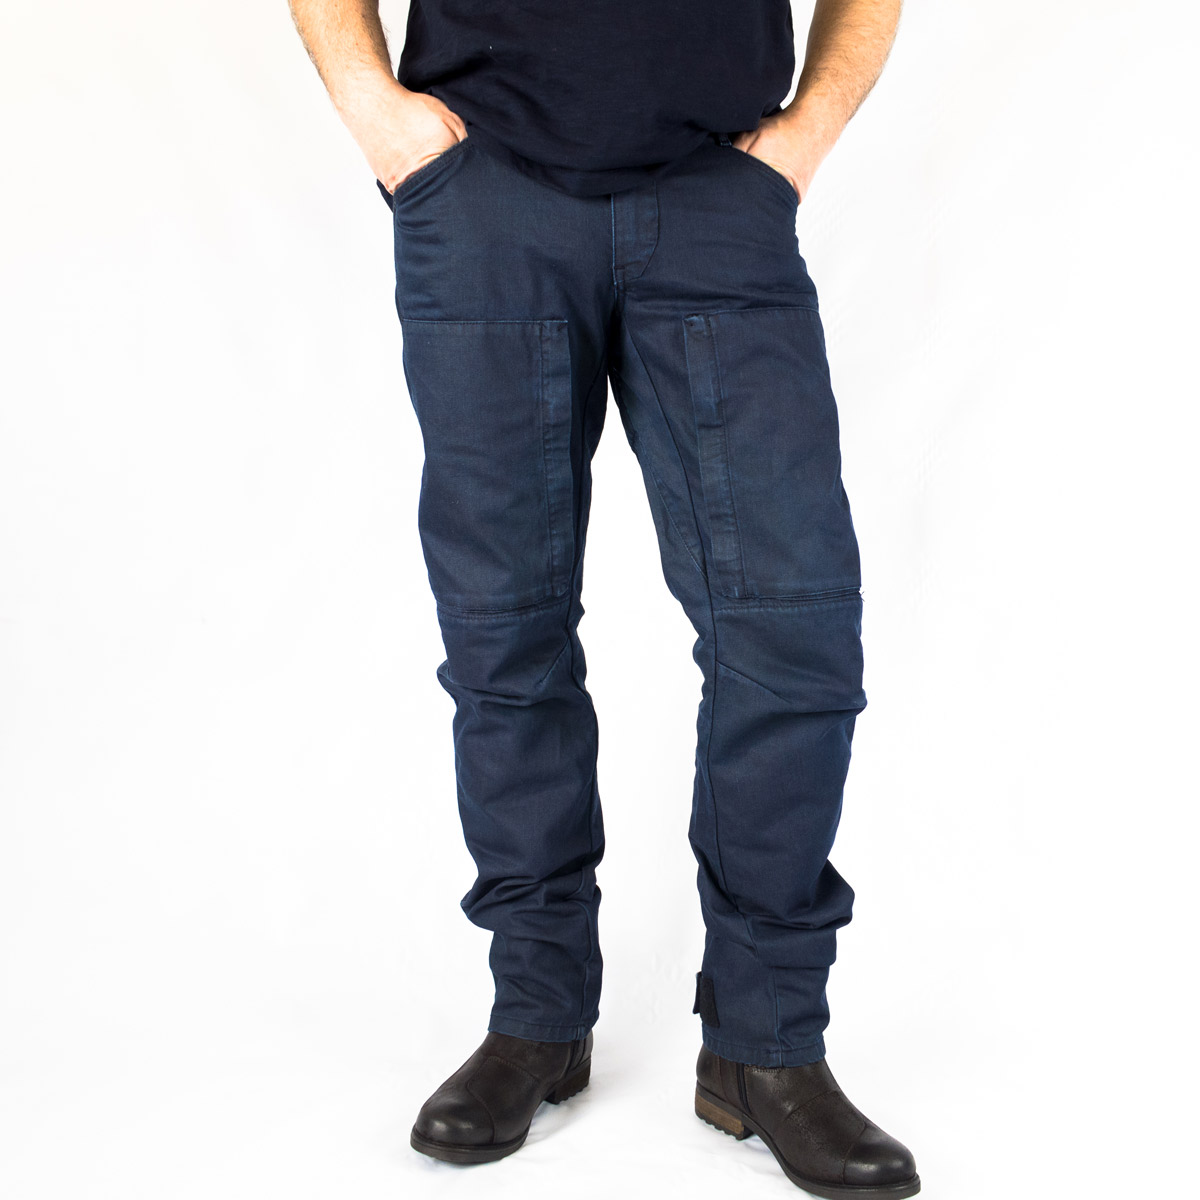 Top 10 motorcycle jeans in association with GetGeared